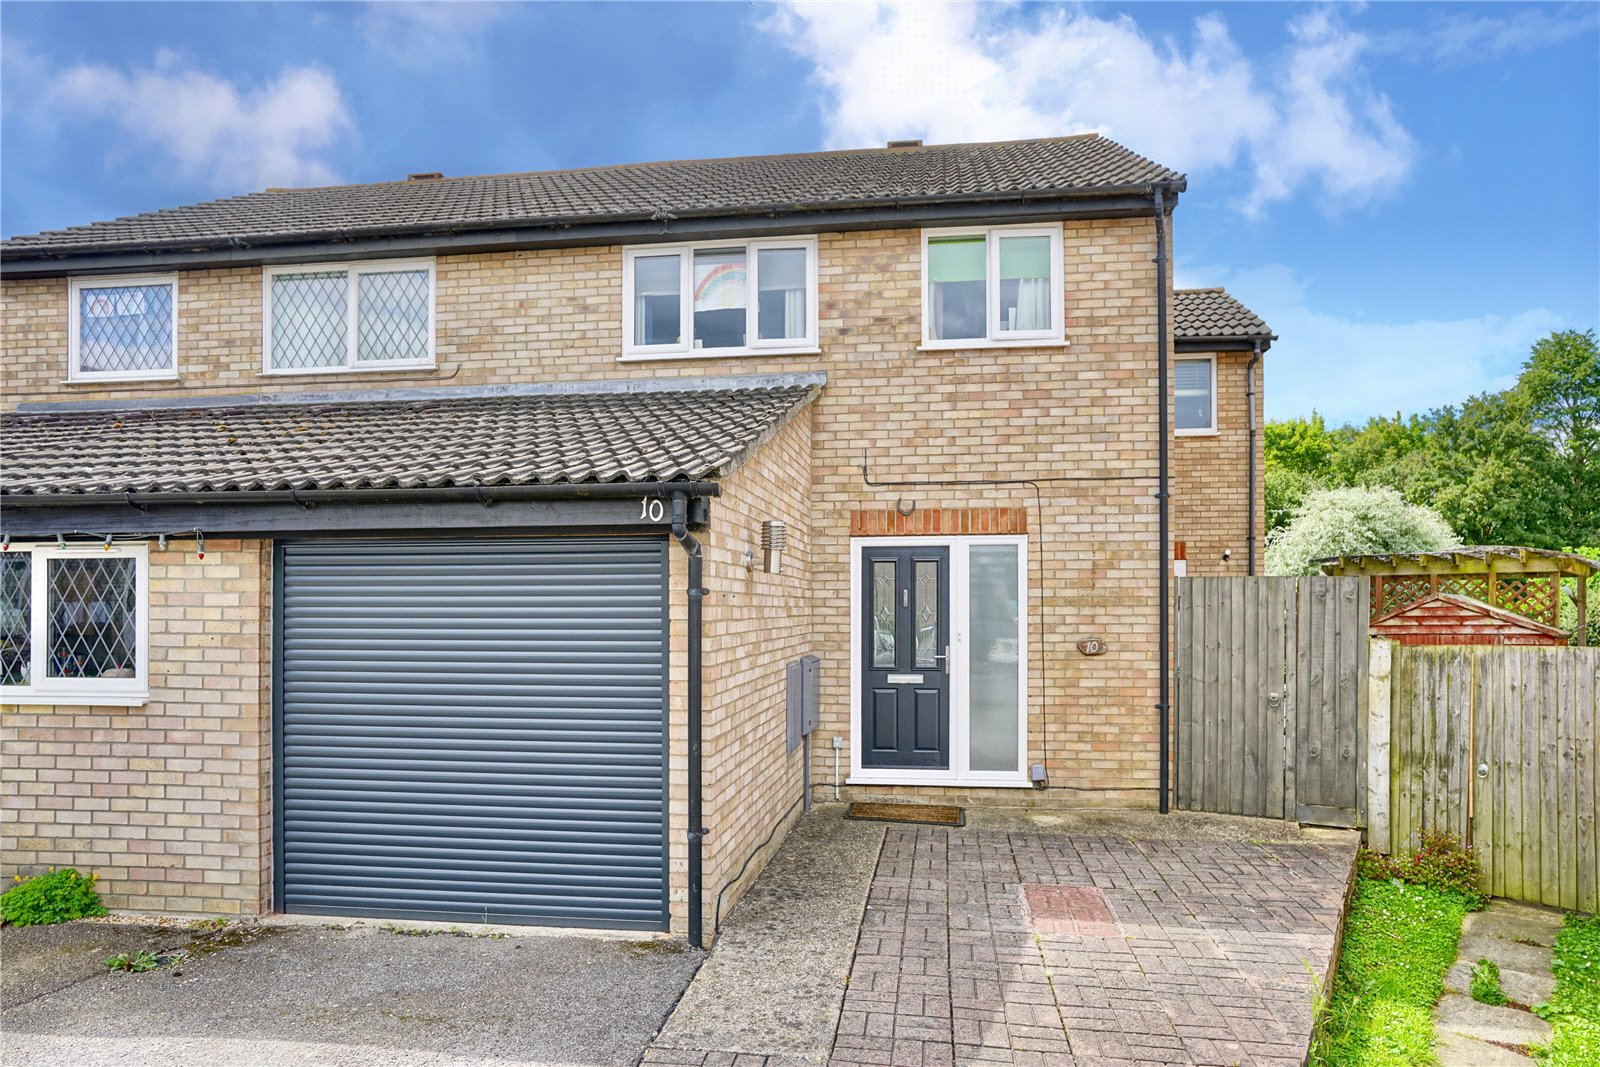 3 bed house for sale in Jellicoe Place, Eaton Socon, PE19